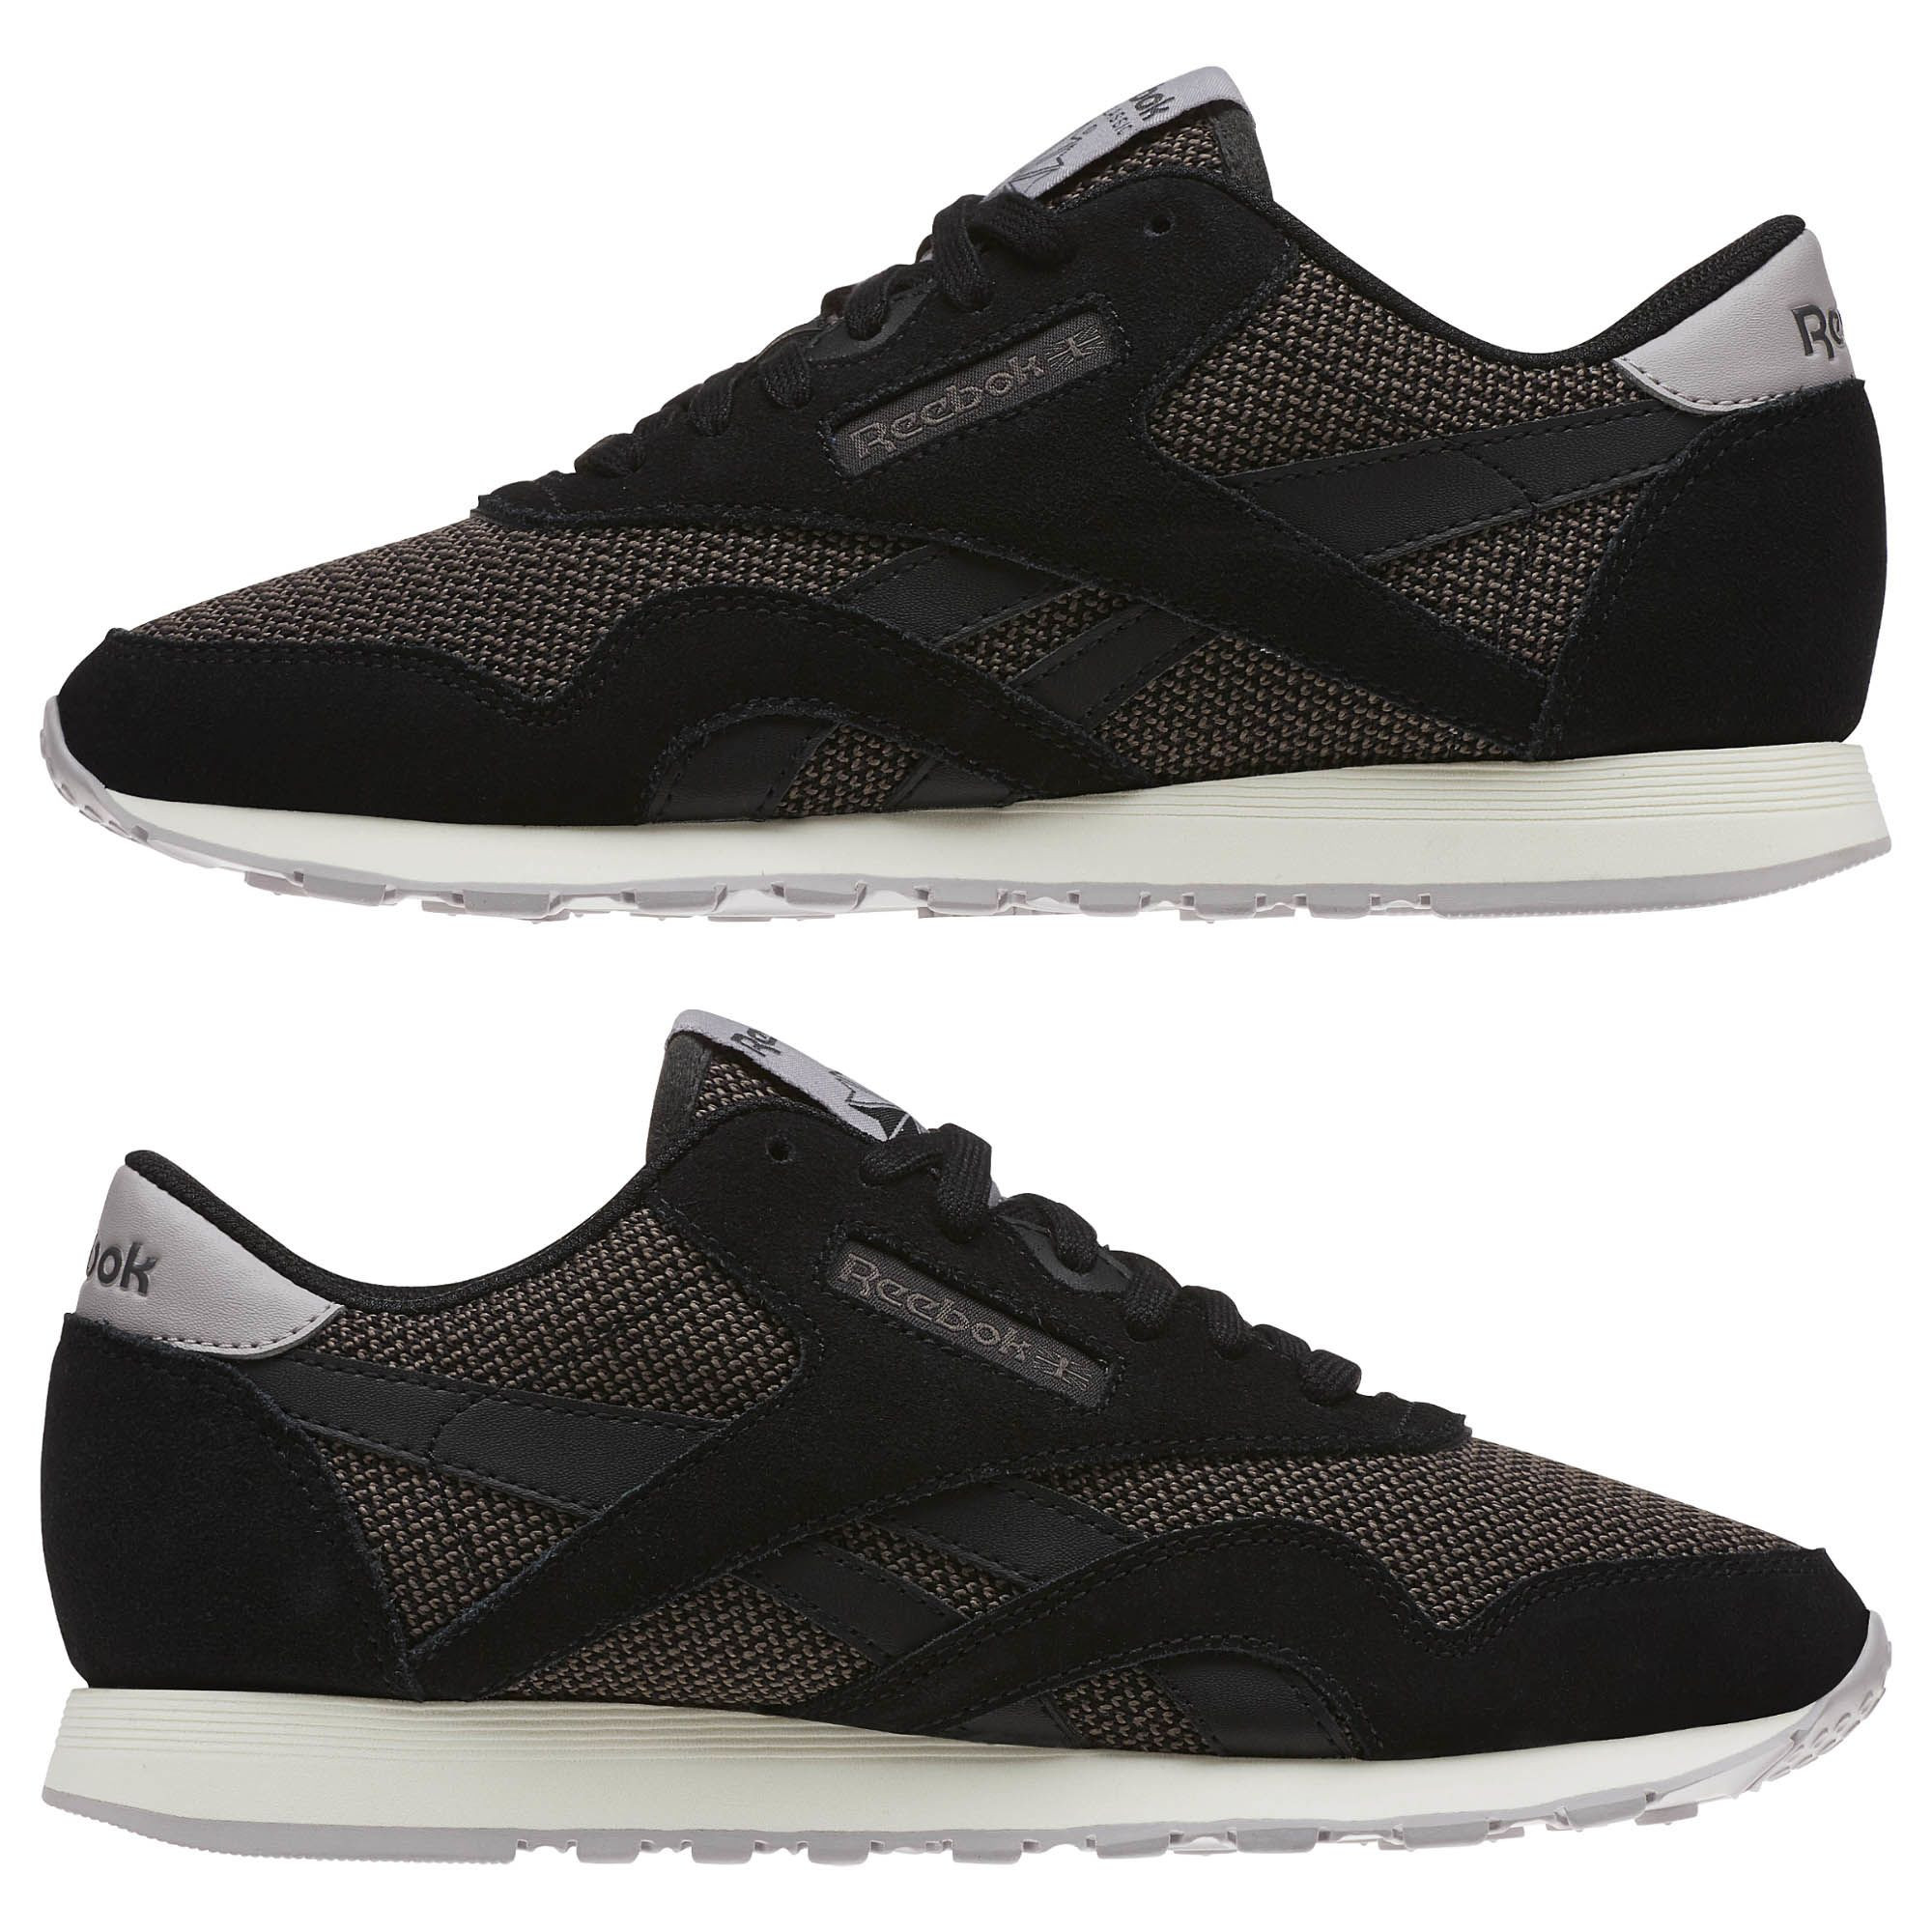 Zapatillas Reebok Mujer Negras Impresionante Reebok Classic Nylon Breathability España Zapatillas Of Zapatillas Reebok Mujer Negras Innovador Reebok Aztec Garment and Gum Venta Por Mayor Zapatillas